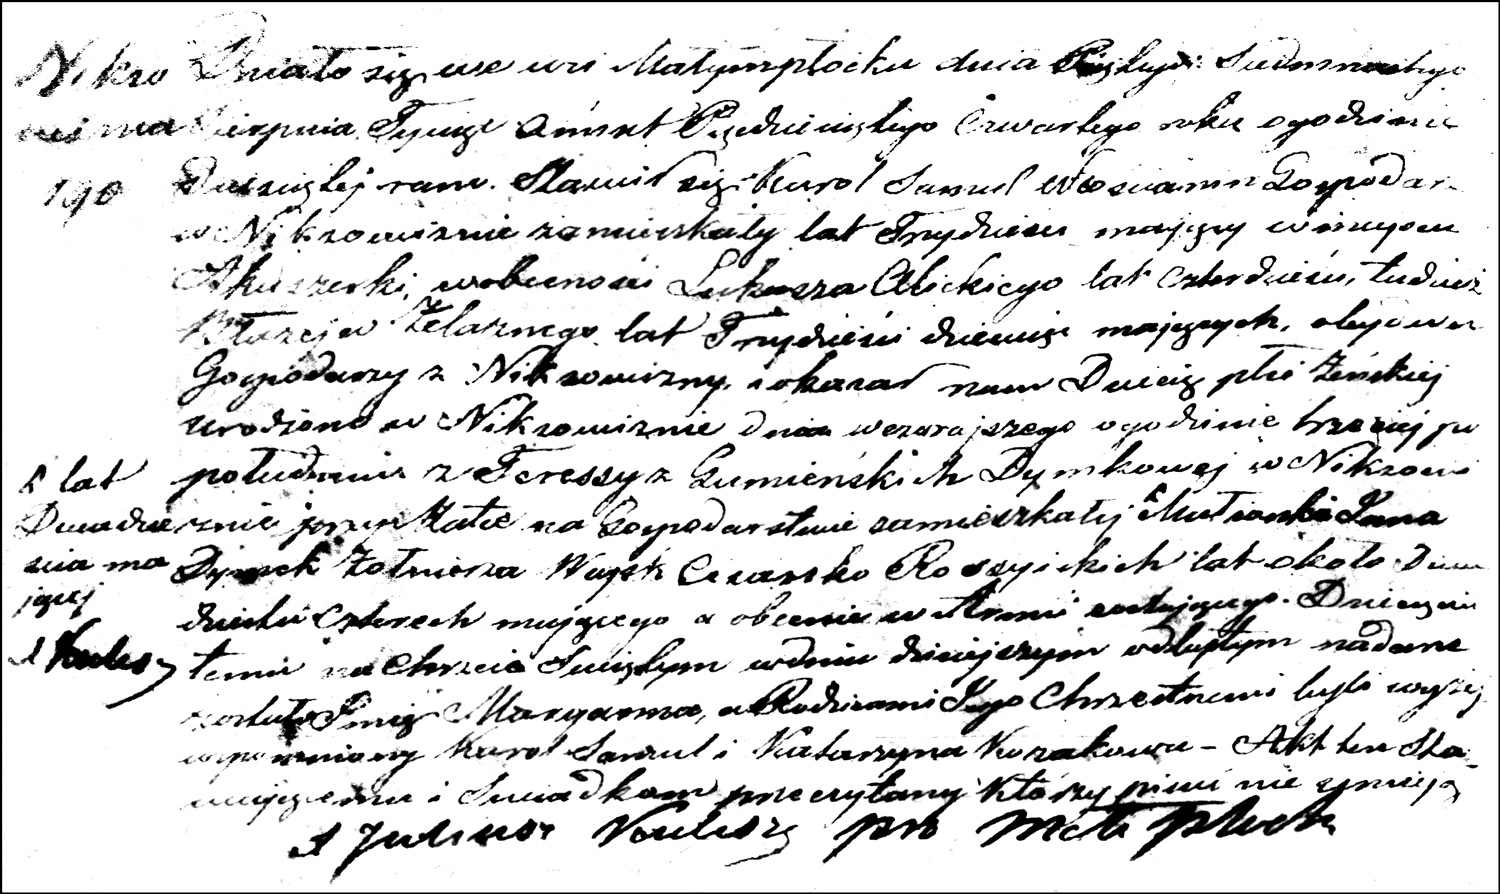 The Birth and Baptismal Record of Maryanna Dymek – 1854